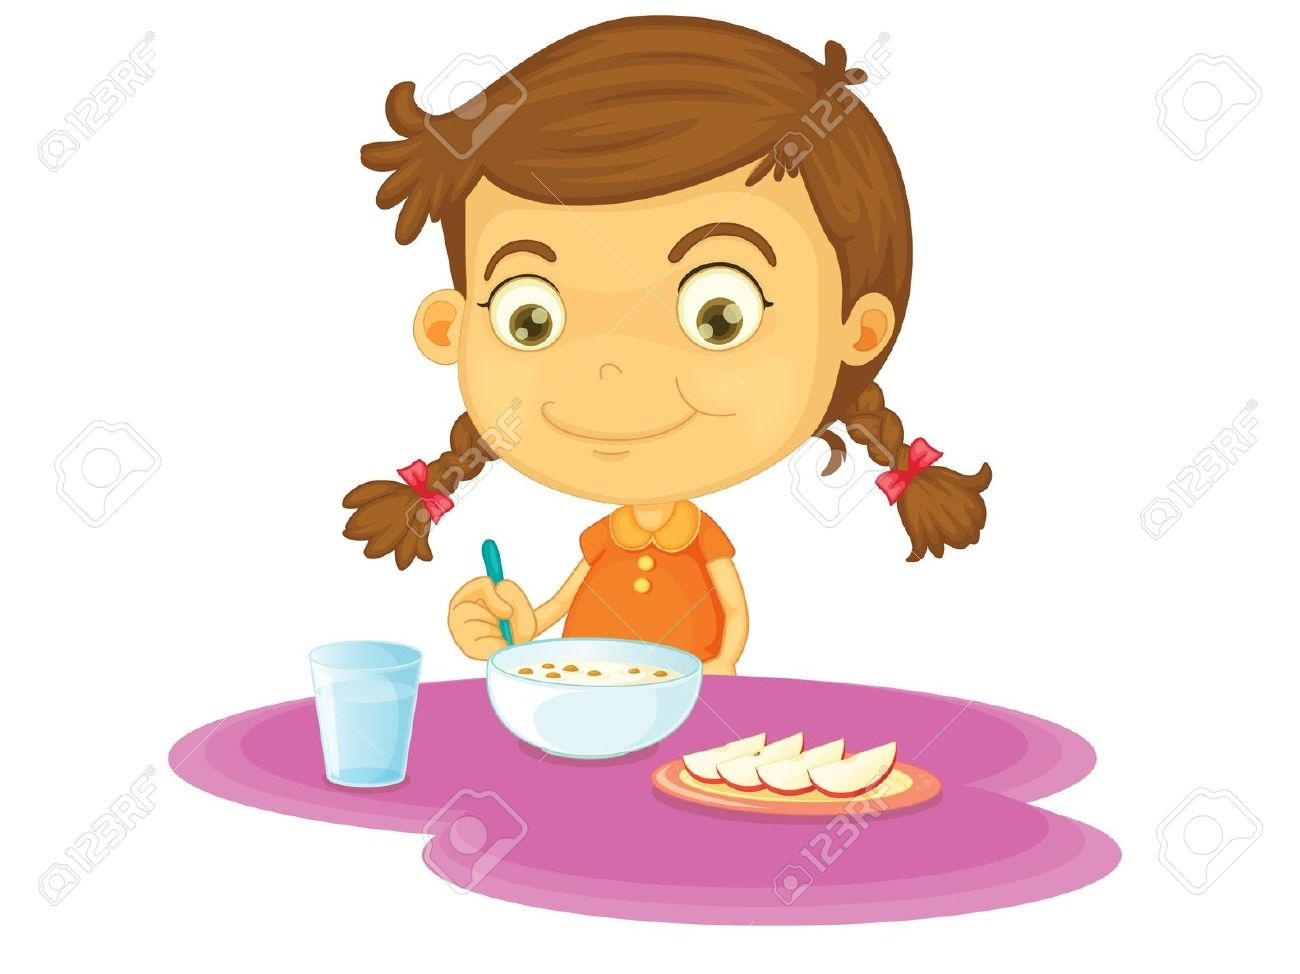 Eat breakfast clipart 12 » Clipart Station